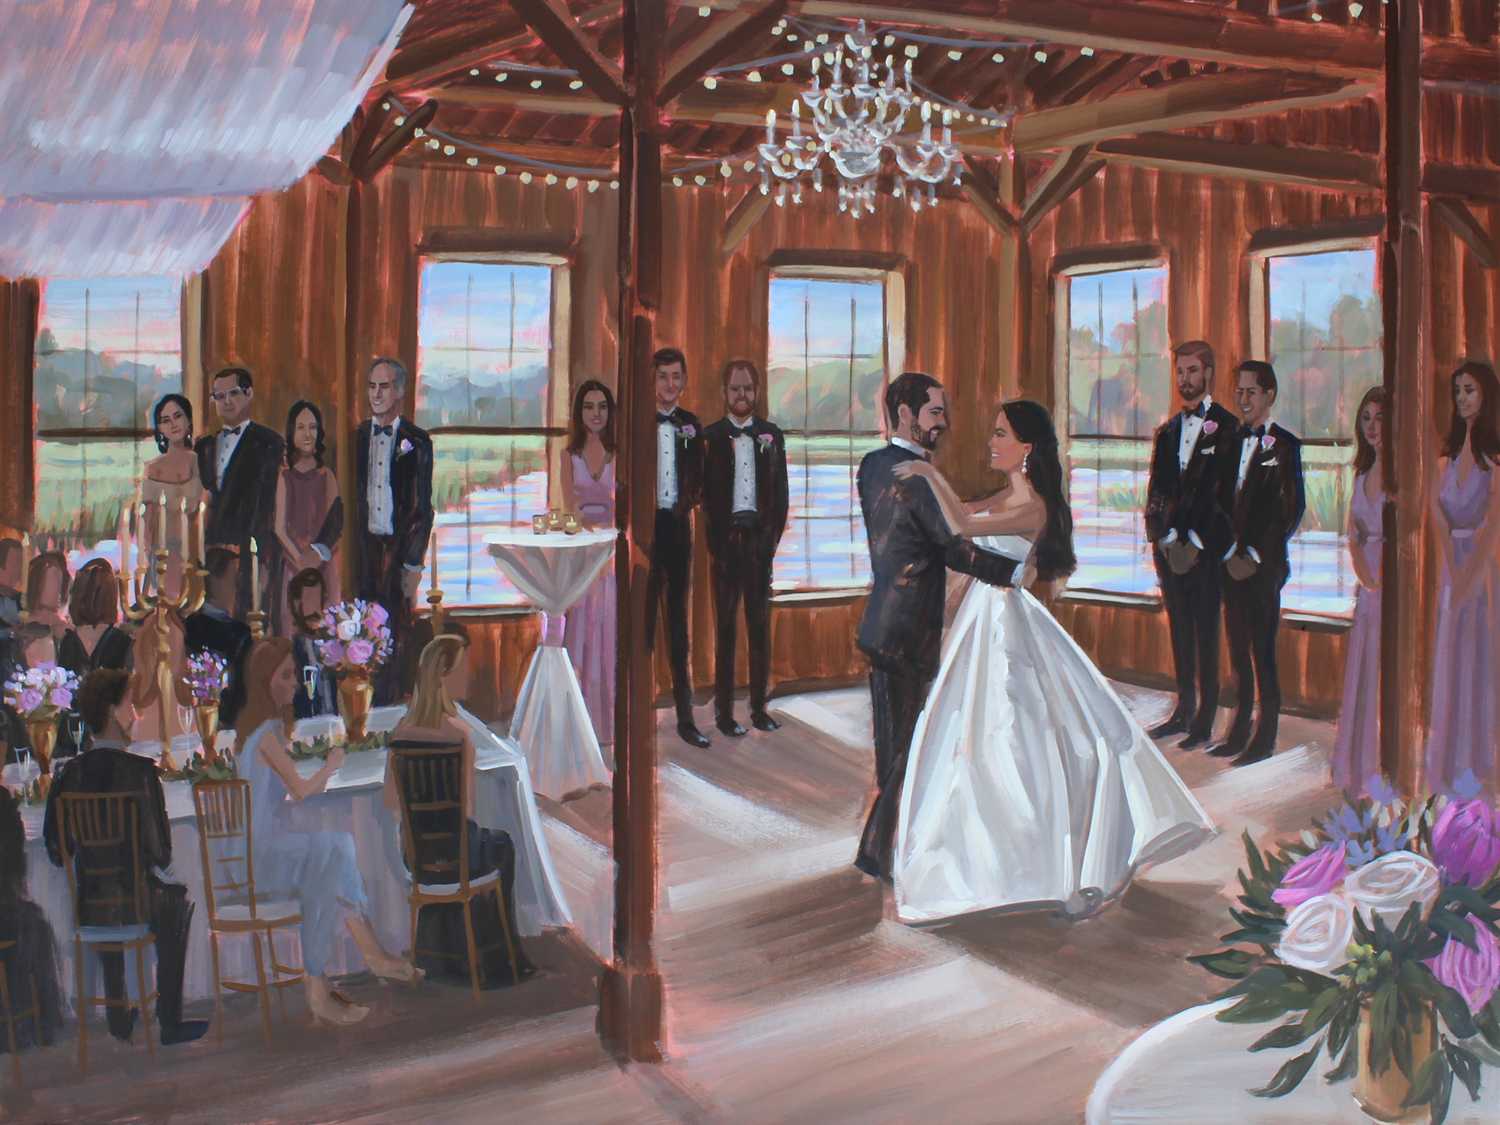 Carolina + Jacob commissioned live wedding painter, Ben Keys, to capture their first dance during their reception held at Charleston's Boone Hall Plantation.